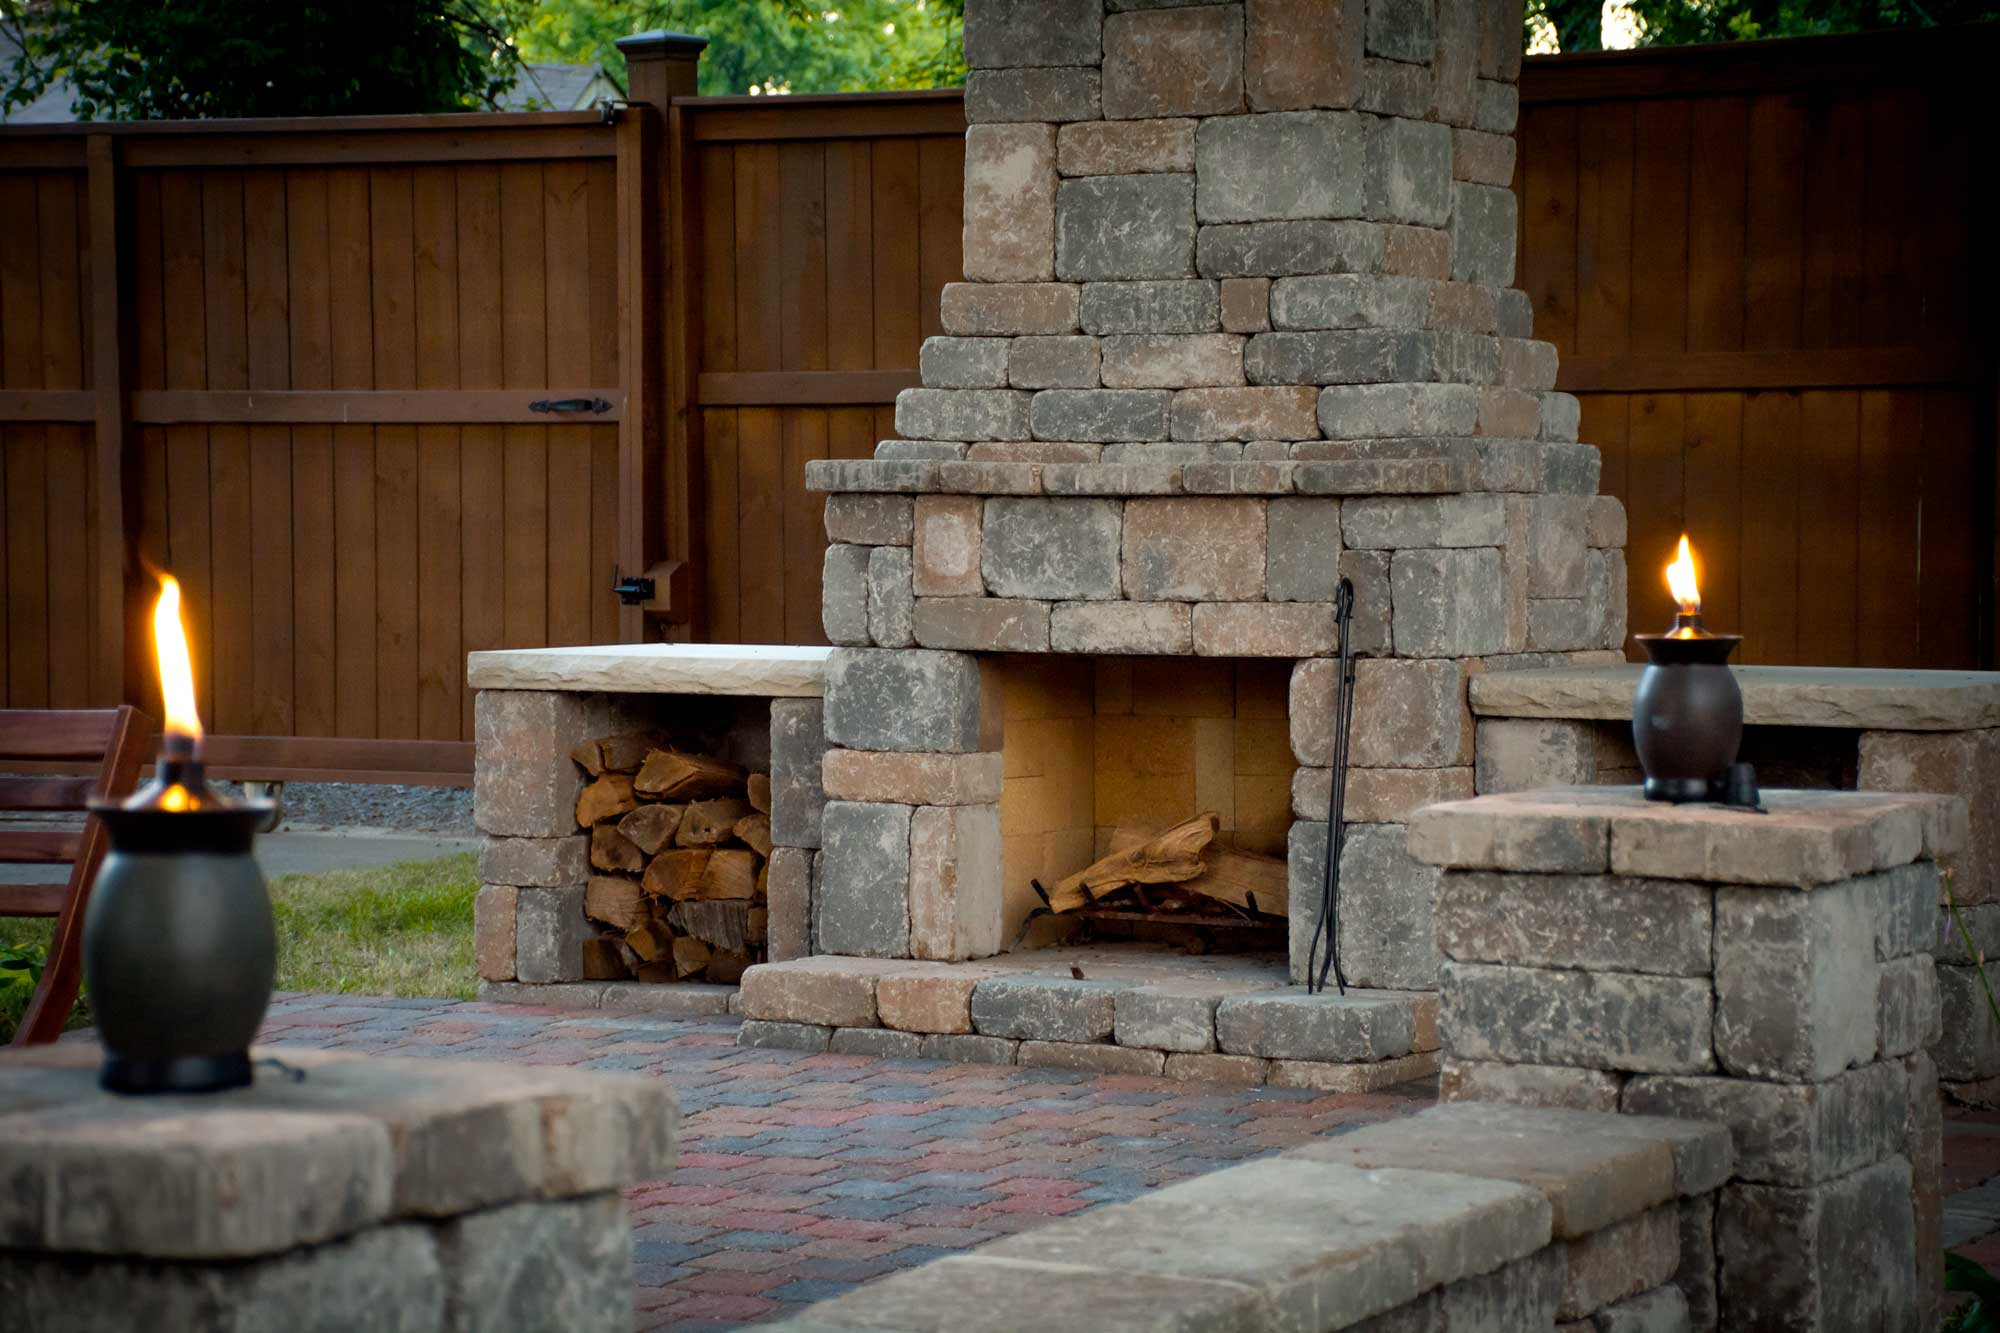 Best ideas about Outdoor Fireplace DIY . Save or Pin DIY outdoor Fremont fireplace kit makes hardscaping simple Now.